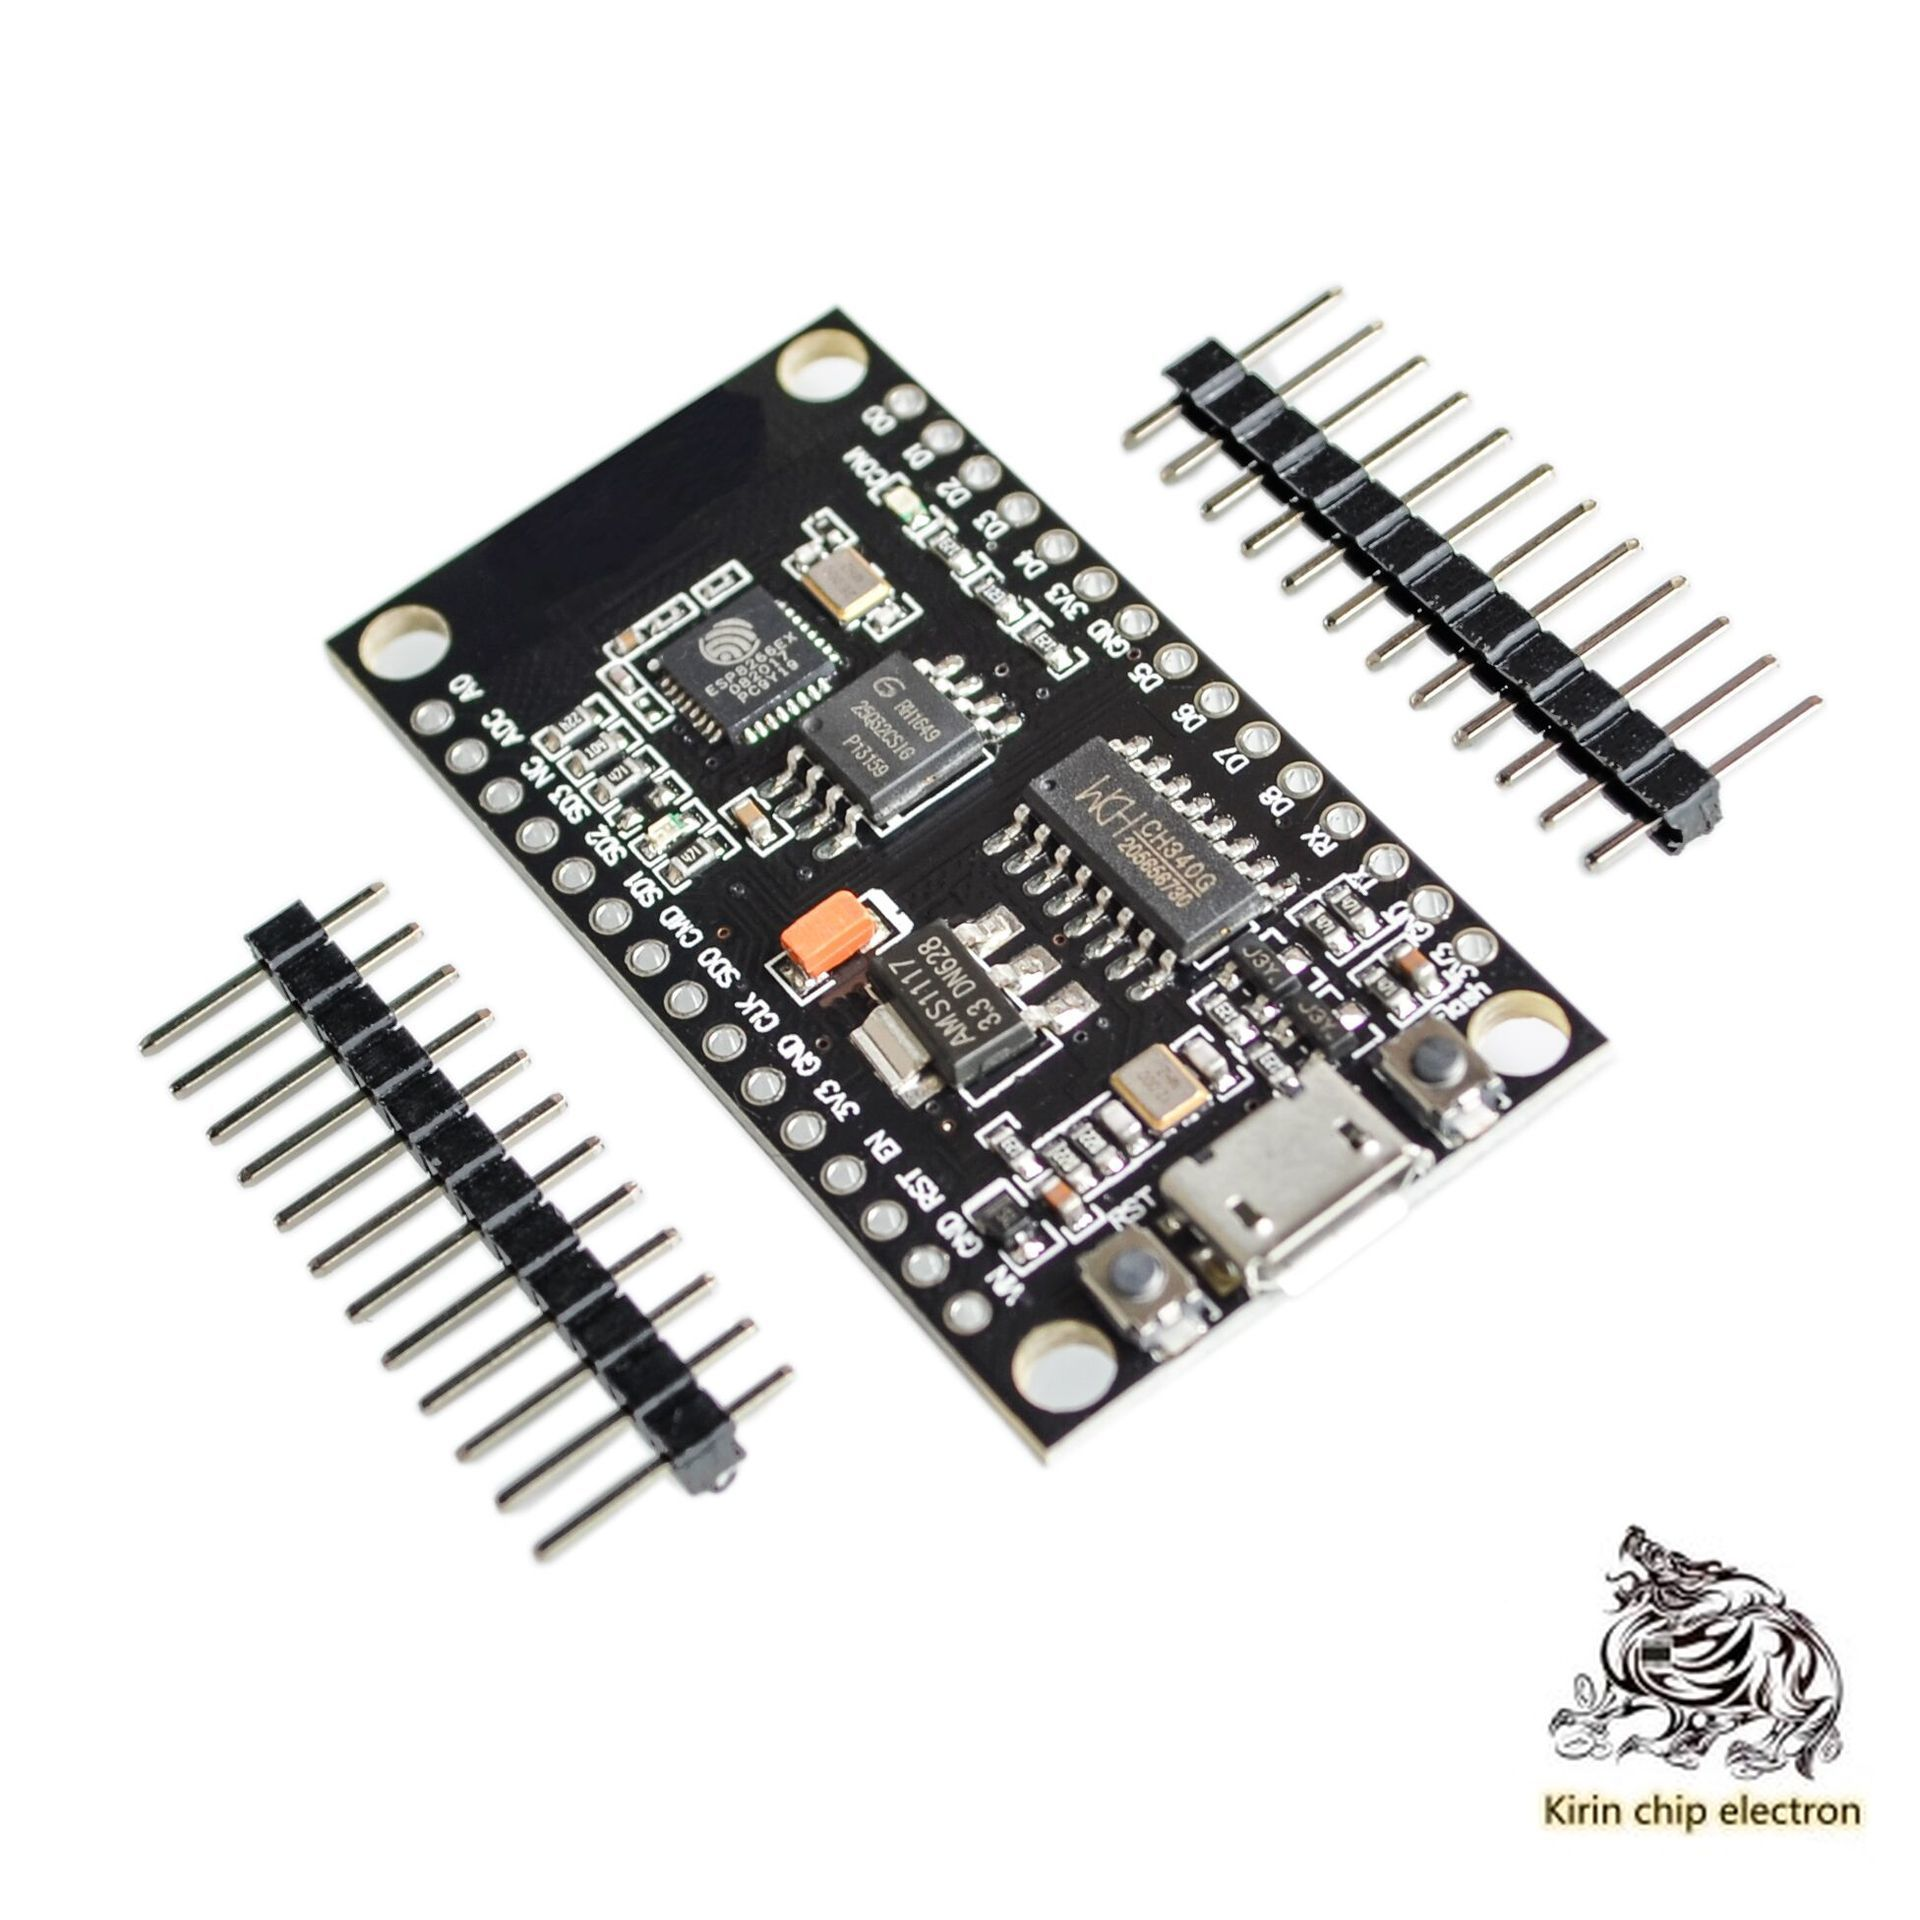 5PCS/LOT New CH340G NODEMCU Fully Compatible With Old ESP8266 32M Internet Of Things Module